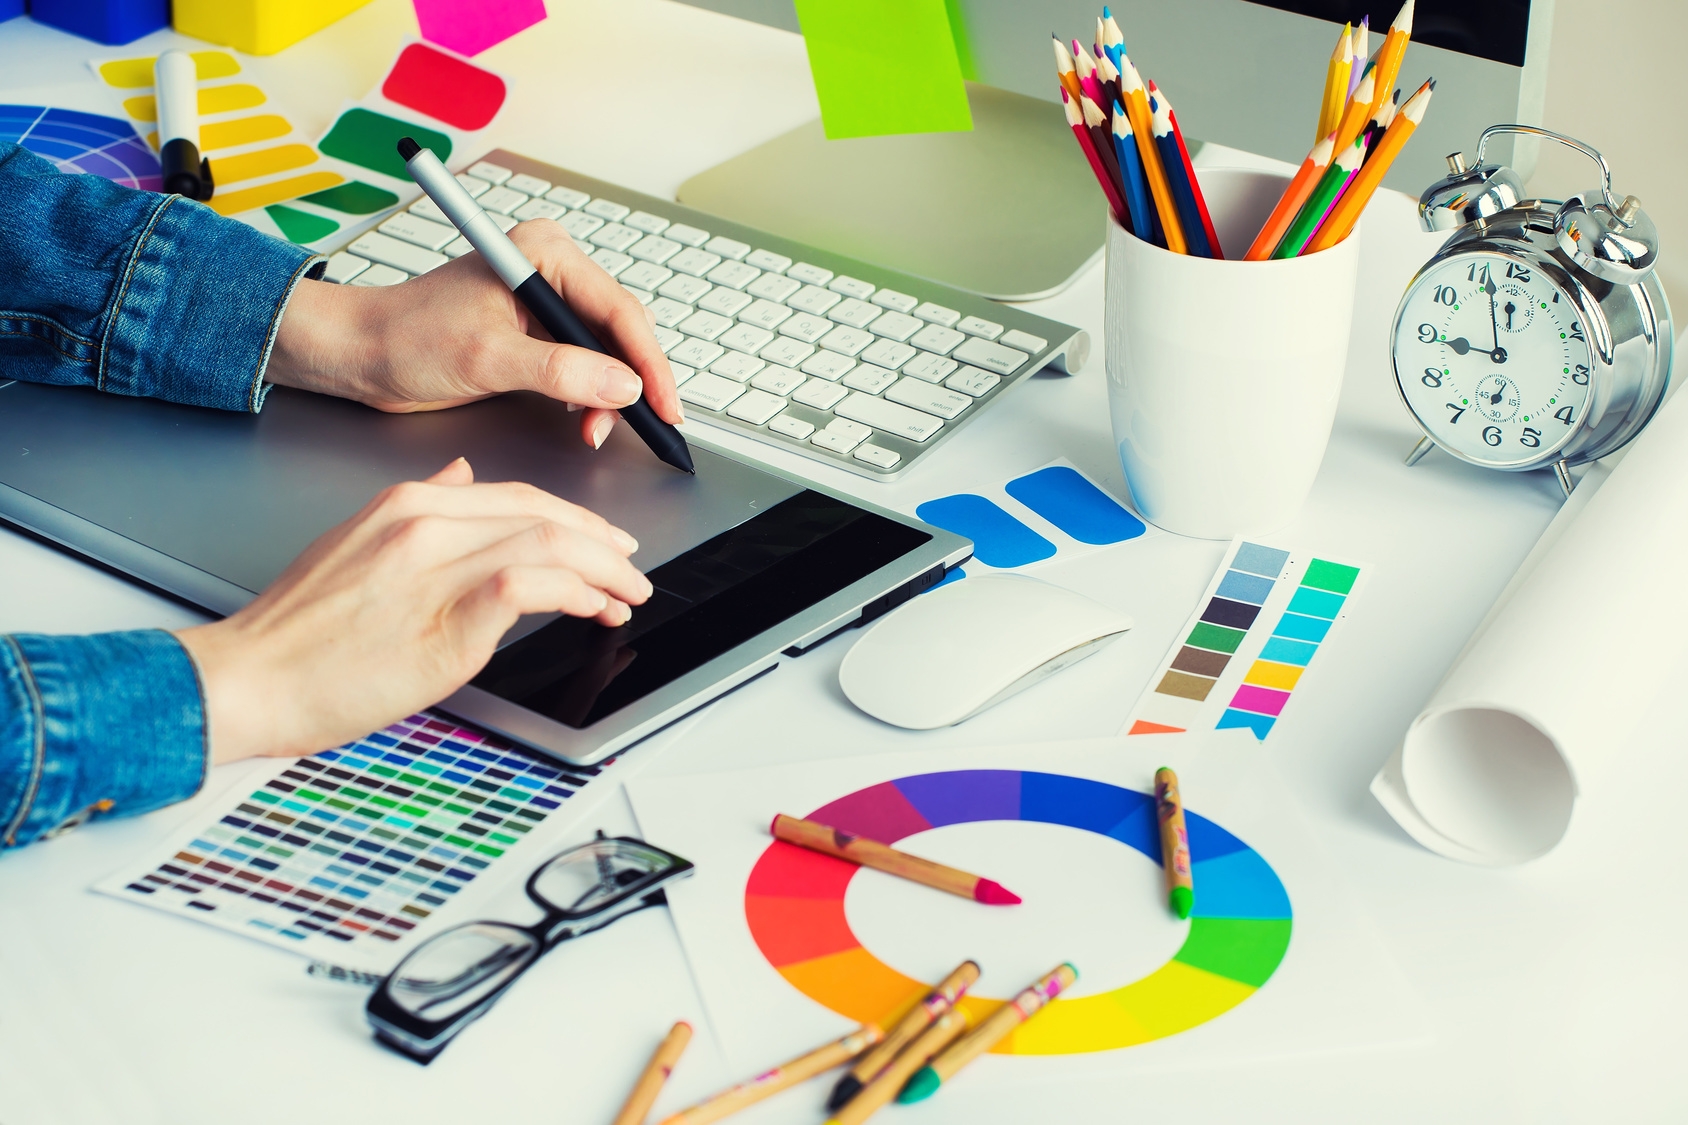 Follow the Graphic Designing latest trends. Importance of Graphic Designing